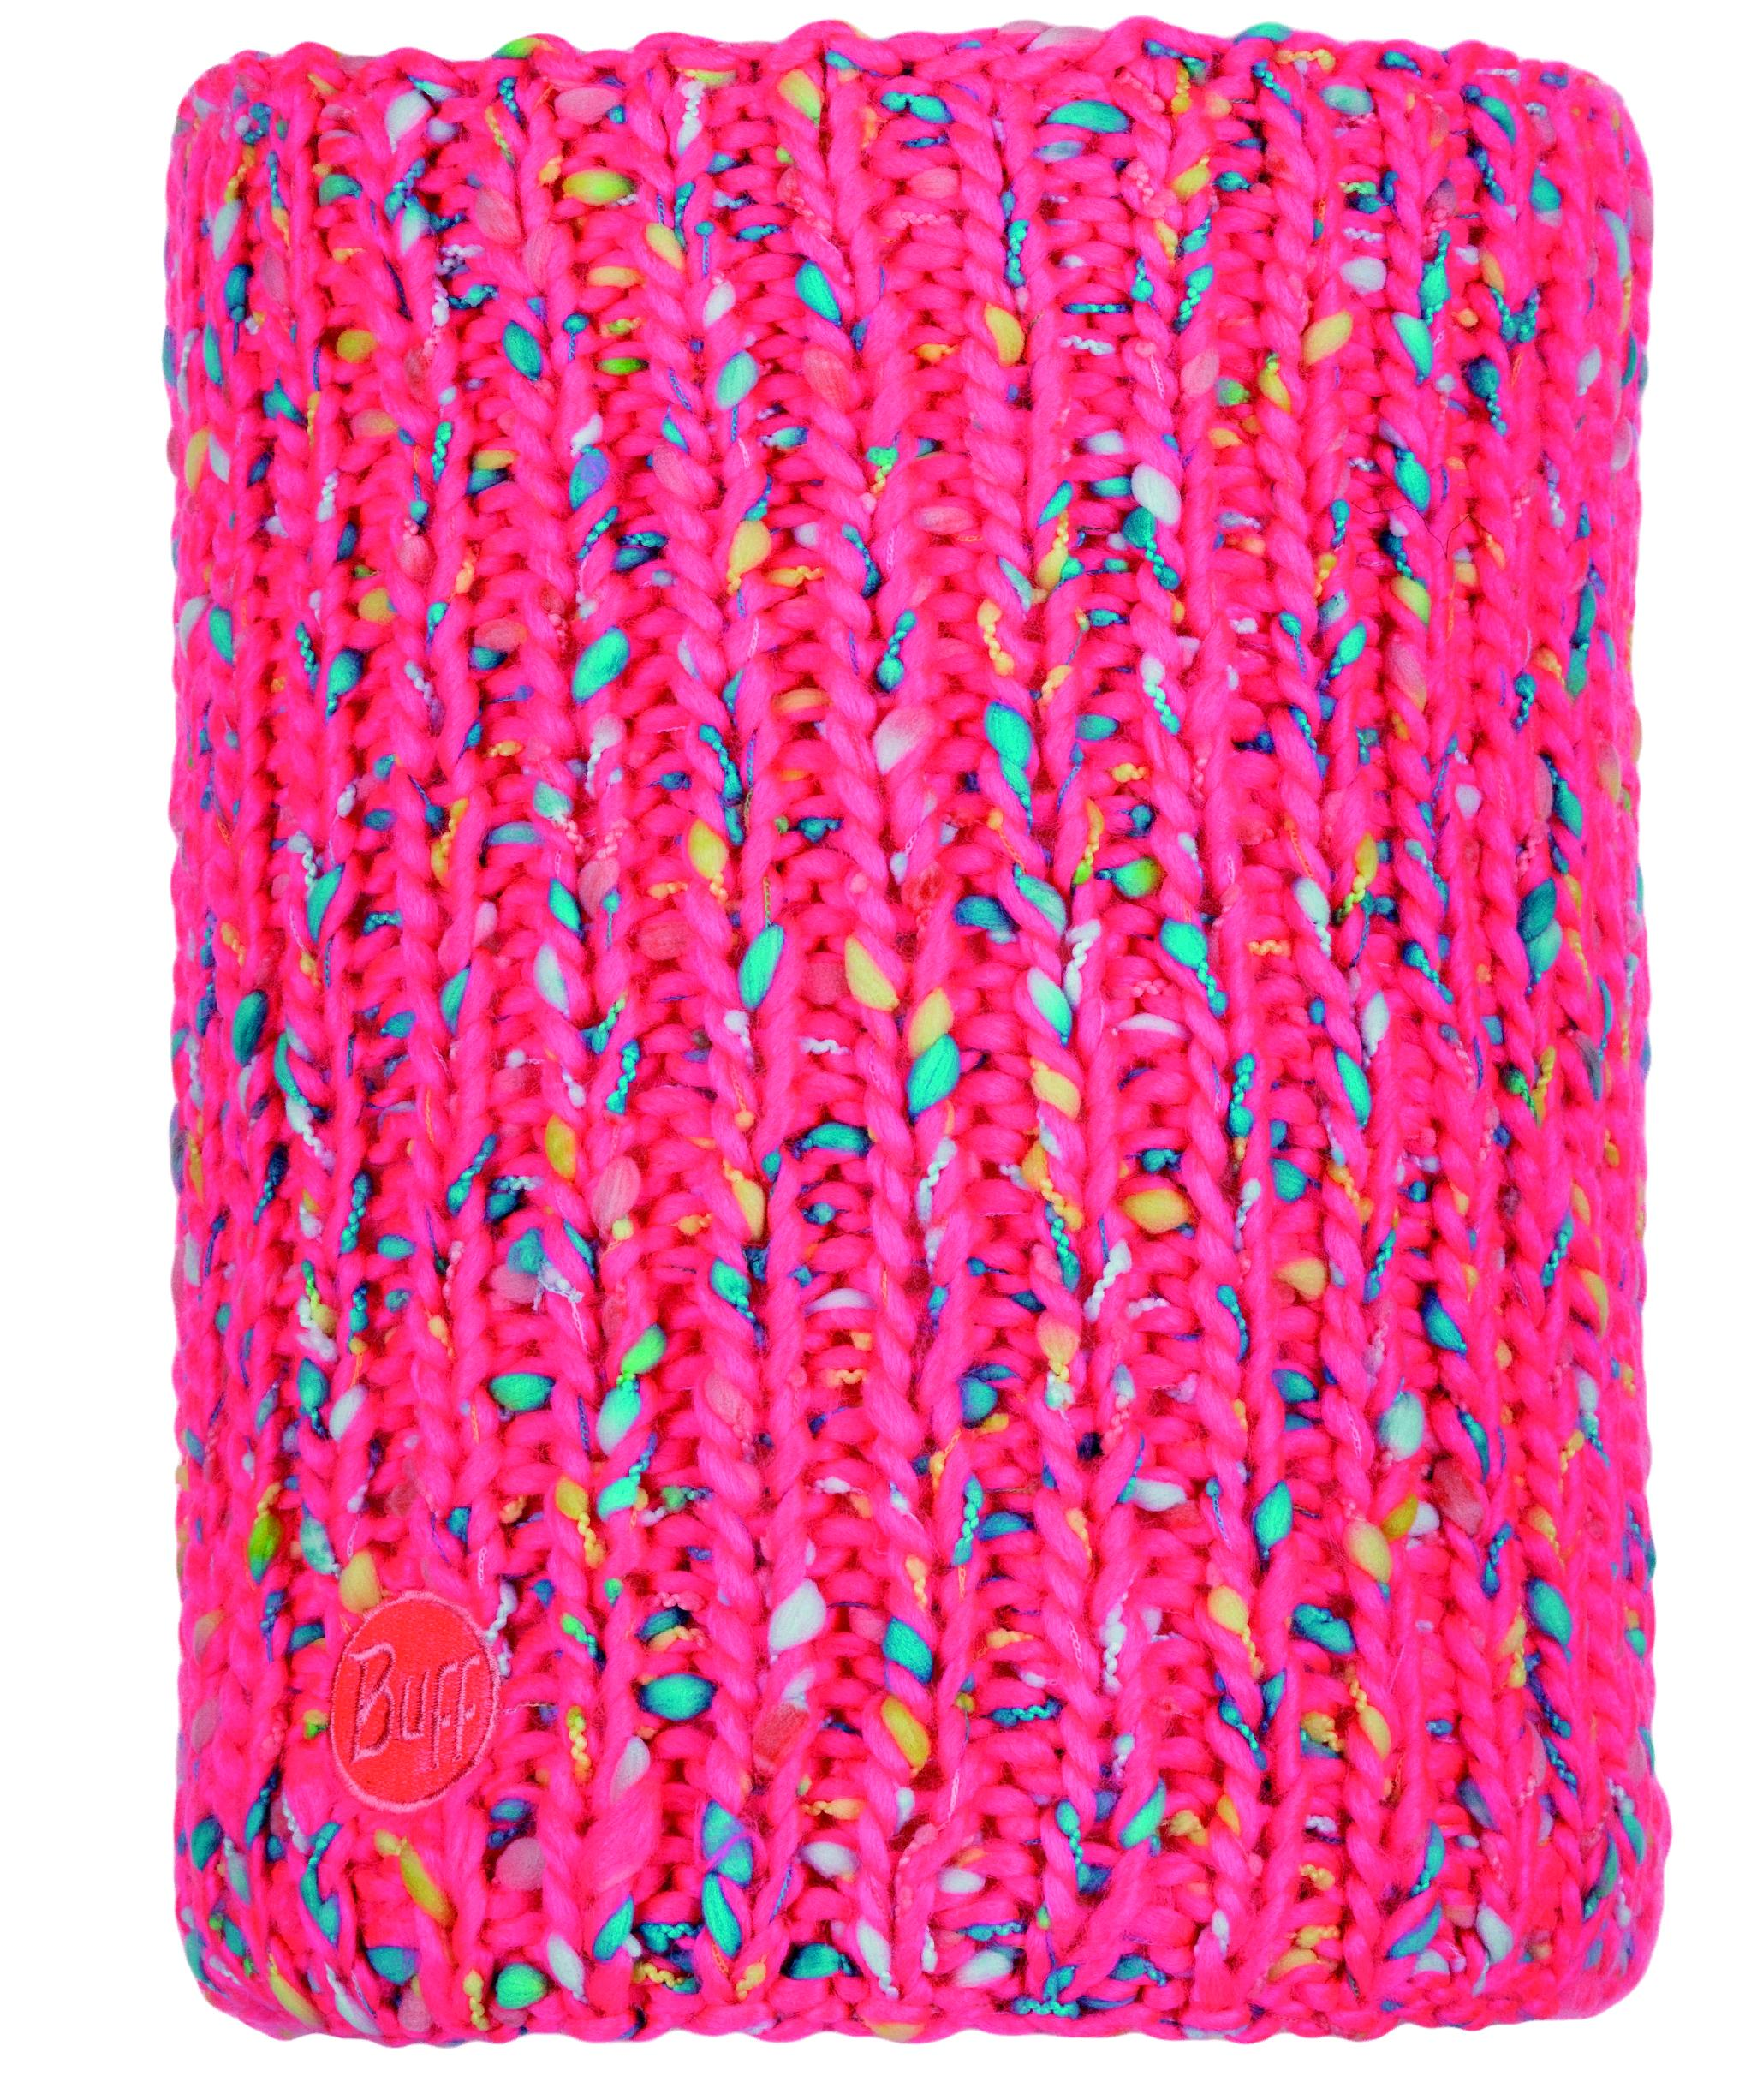 Шарф Buff Knitted & Polar Neckwarmer Yssik Pink Fluor